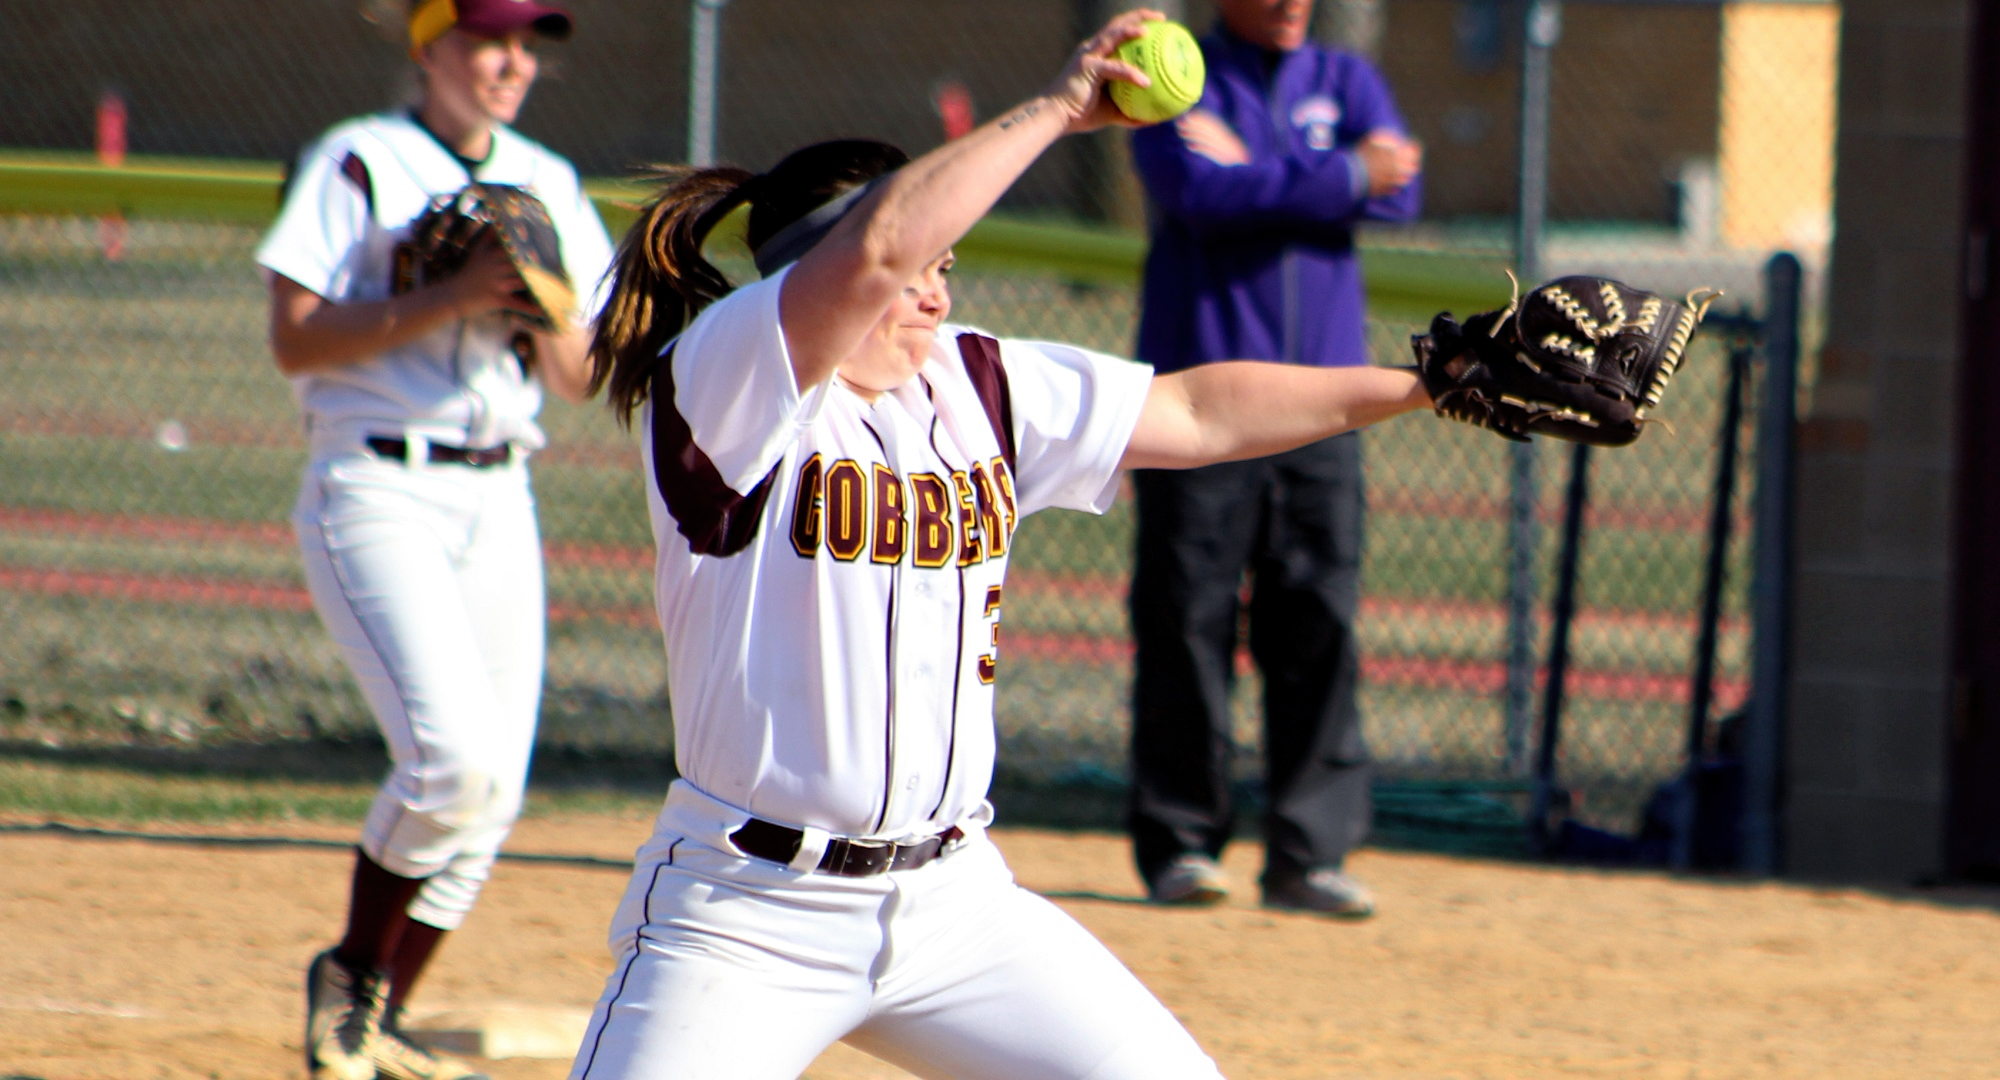 Sophomore Lexi Olek gets ready to throw a pitch in the first game of the Cobbers' DH with St. Thomas. She pitched 3.0 scoreless innings in her first college pitching experience of her career.